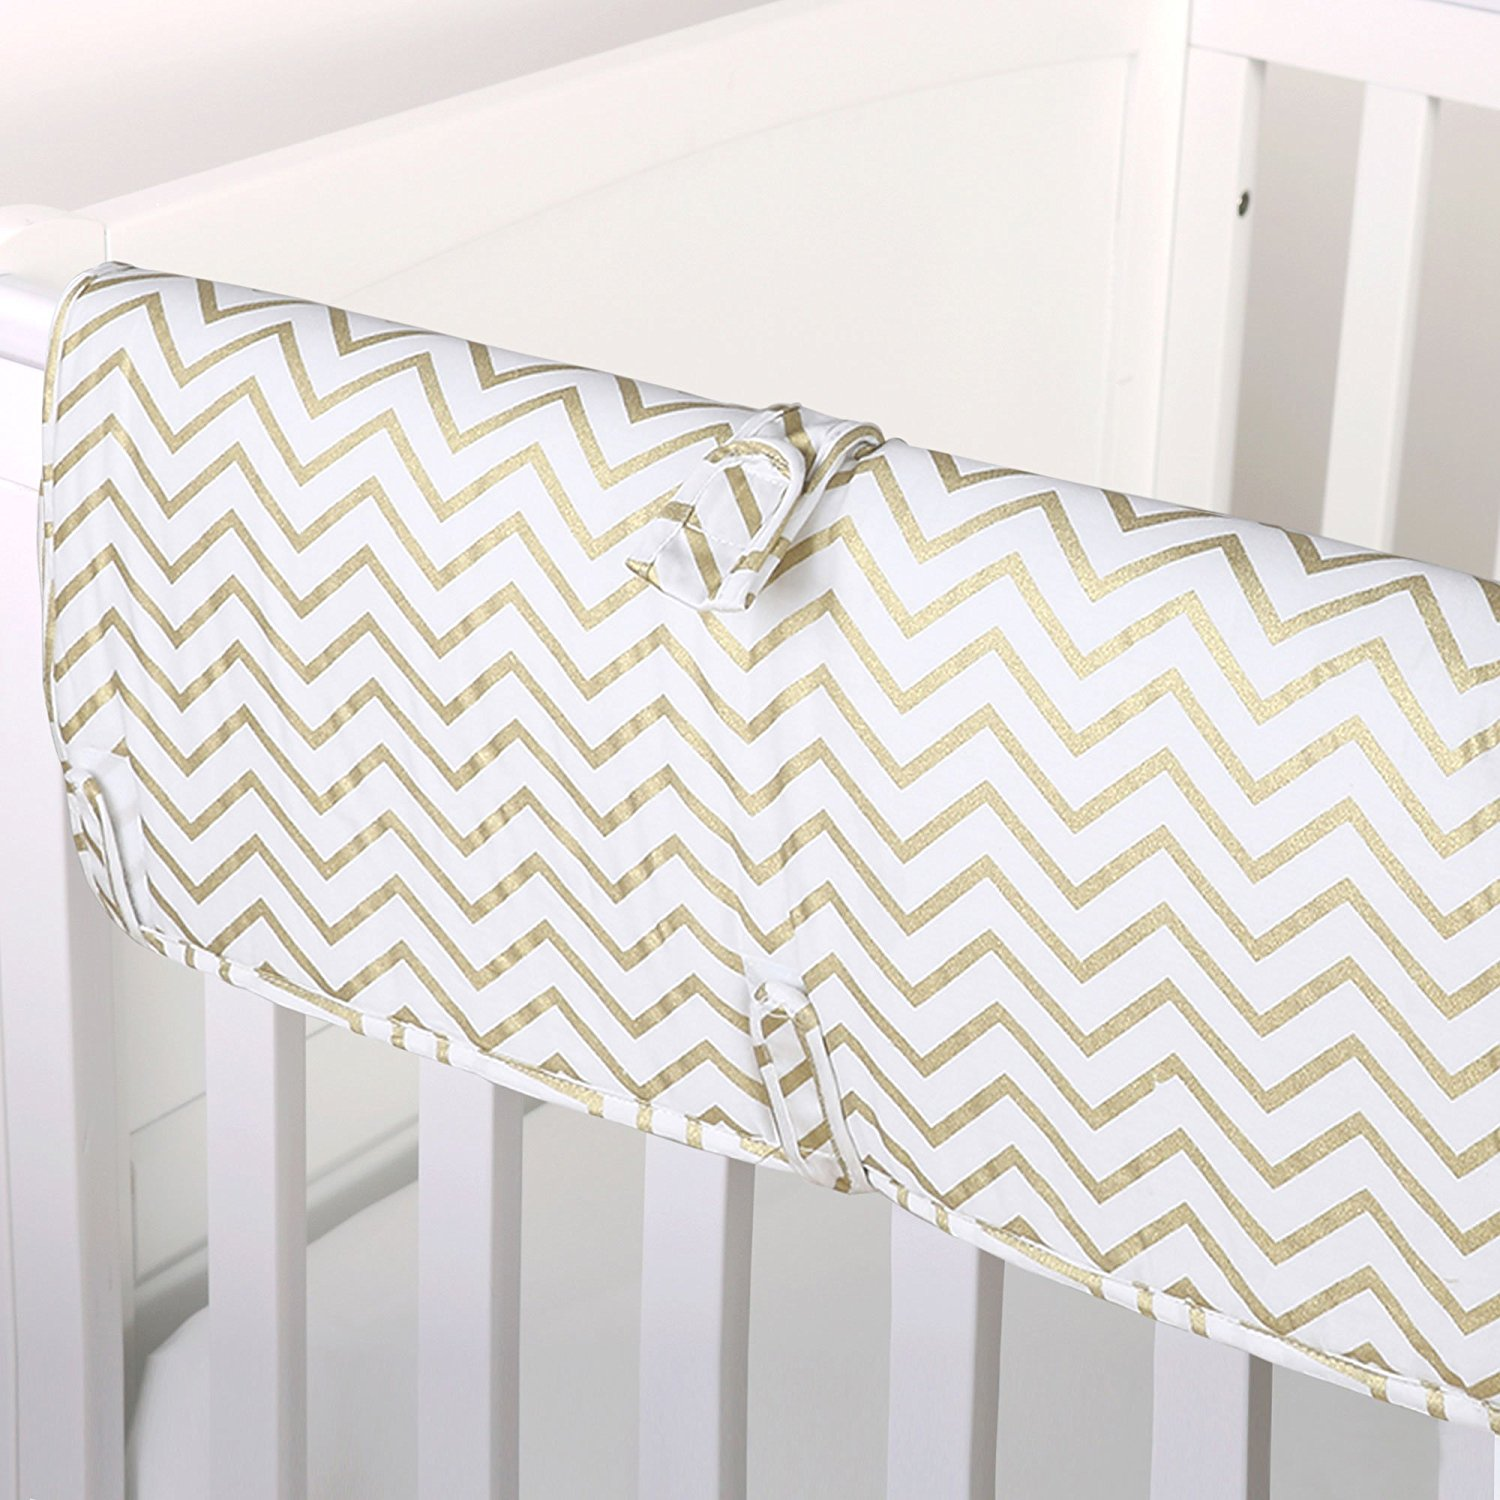 Pink Zig Zag Print 100% Cotton Padded Crib Rail Guard by, Crib rail guard protects your teething baby from harmful toxins while keeping the crib looking.., By The Peanut Shell Ship from US